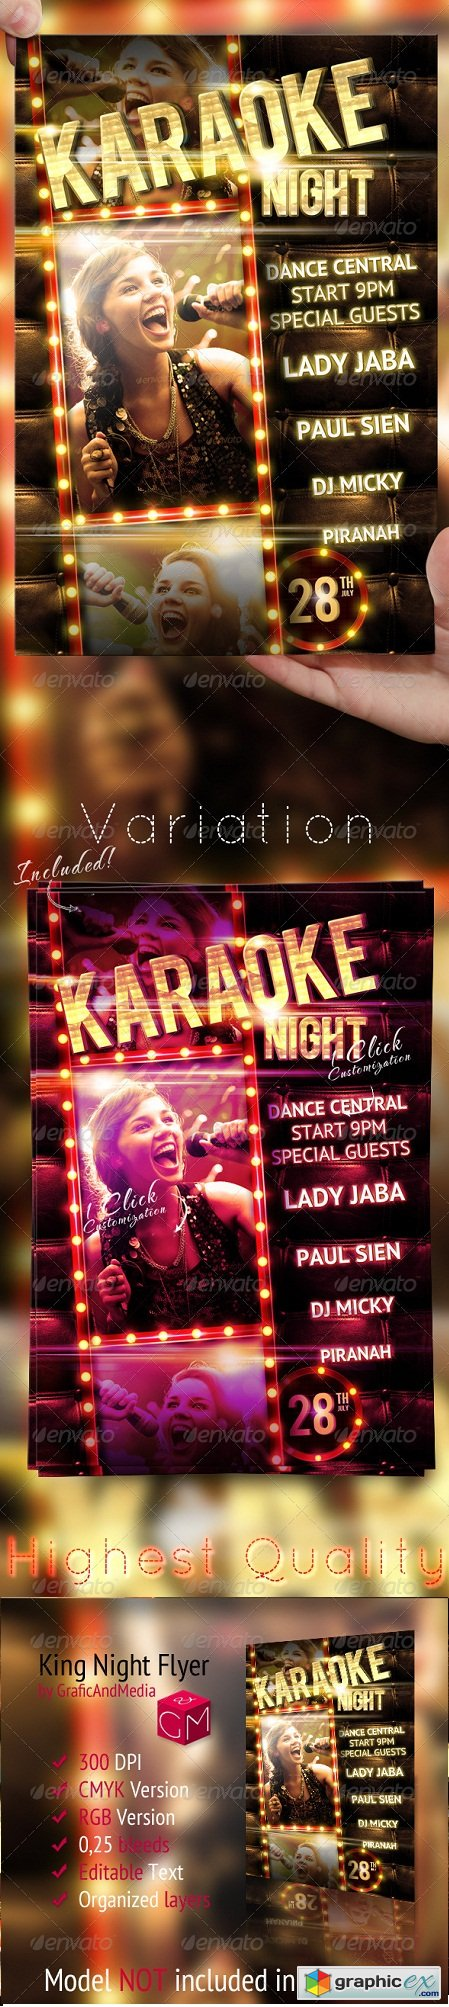 Karaoke Night Party Flyer Template 2592676